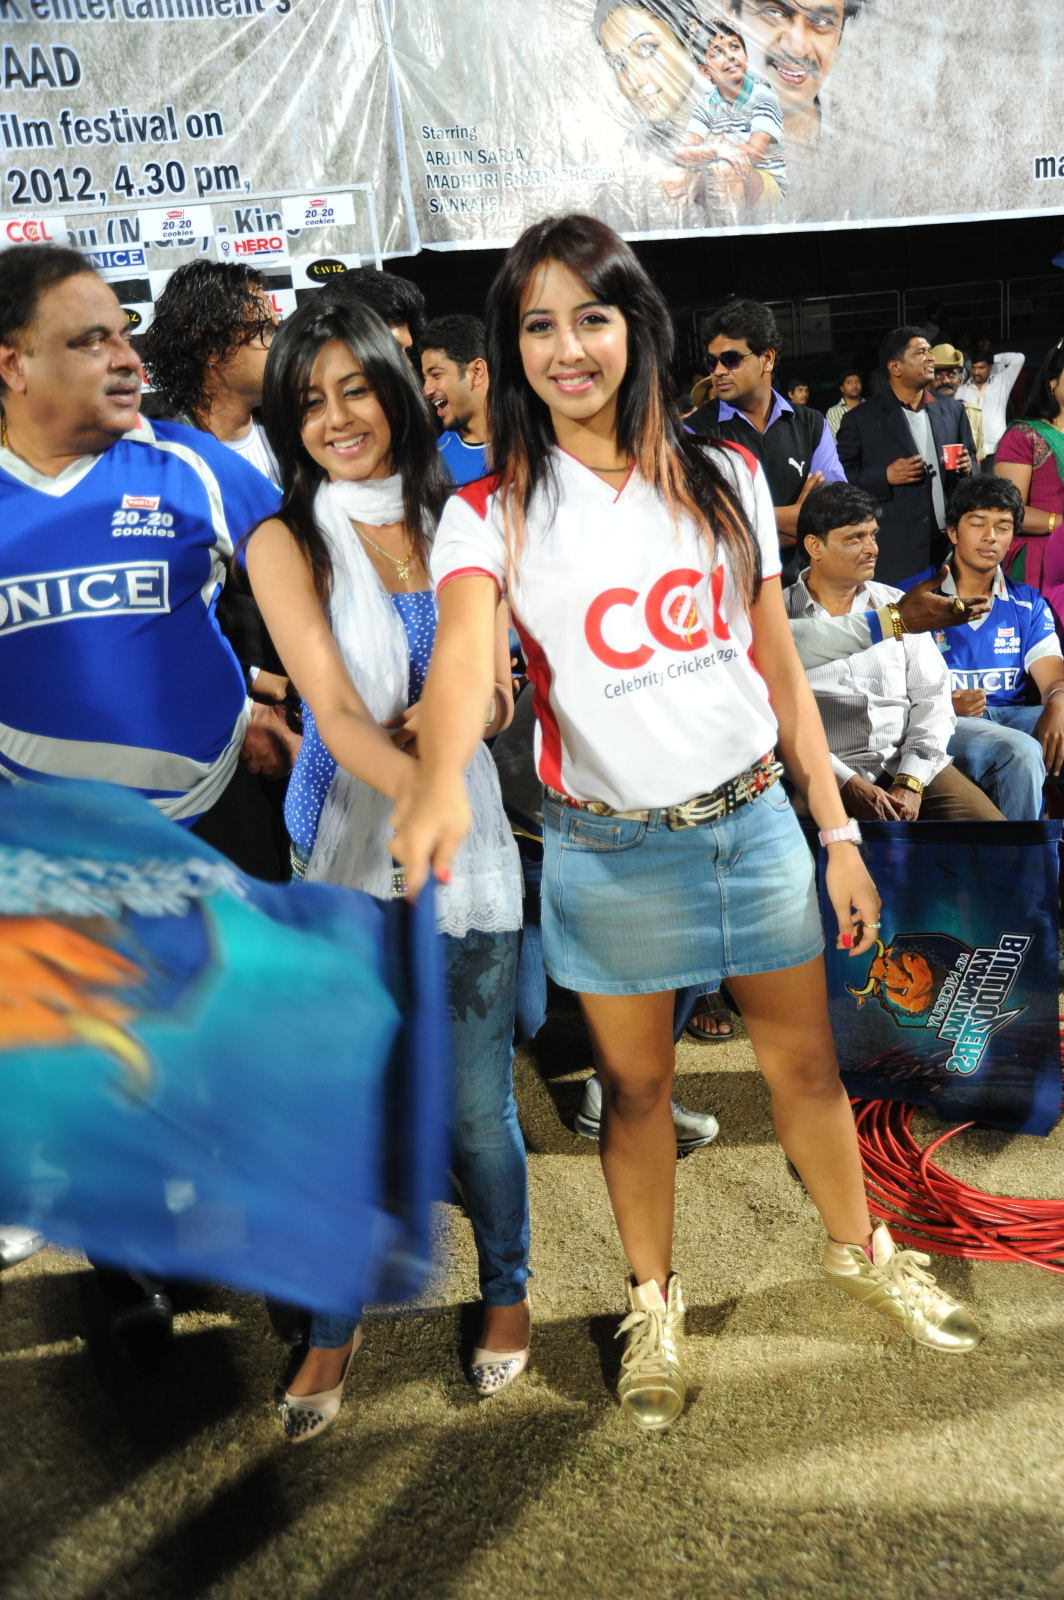 6dj9v2ugg8d74lgs.D.0.Actress-Sanjana-in-CCL-2012-Match-Photo-in ...